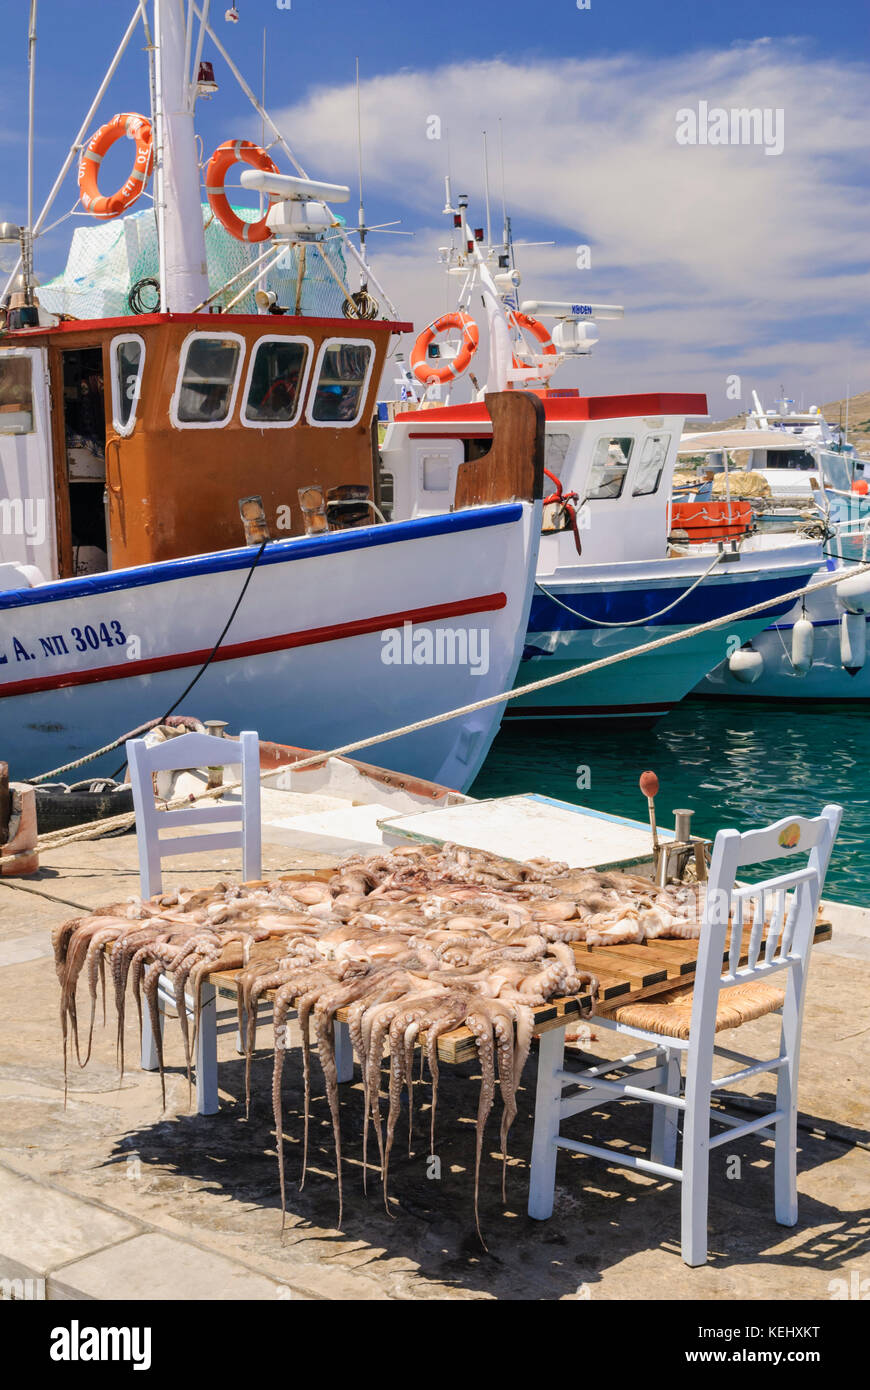 Octopuses drying in the sun in the port town of Naoussa on the island of Paros, Cyclades, Greece - Stock Image